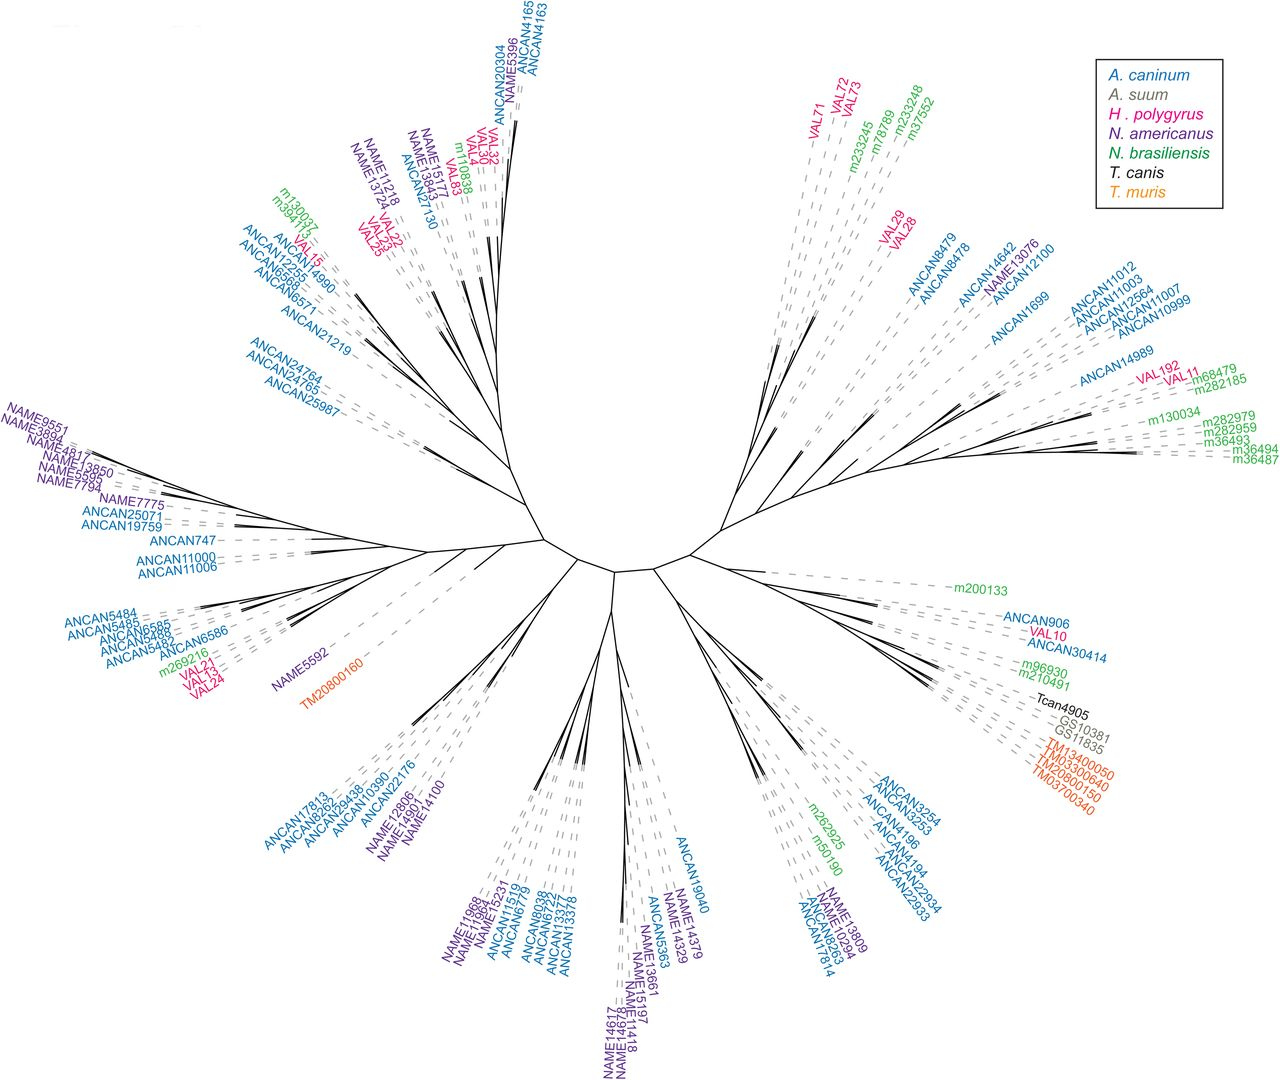 Comprehensive analysis of human hookworm secreted proteins using a